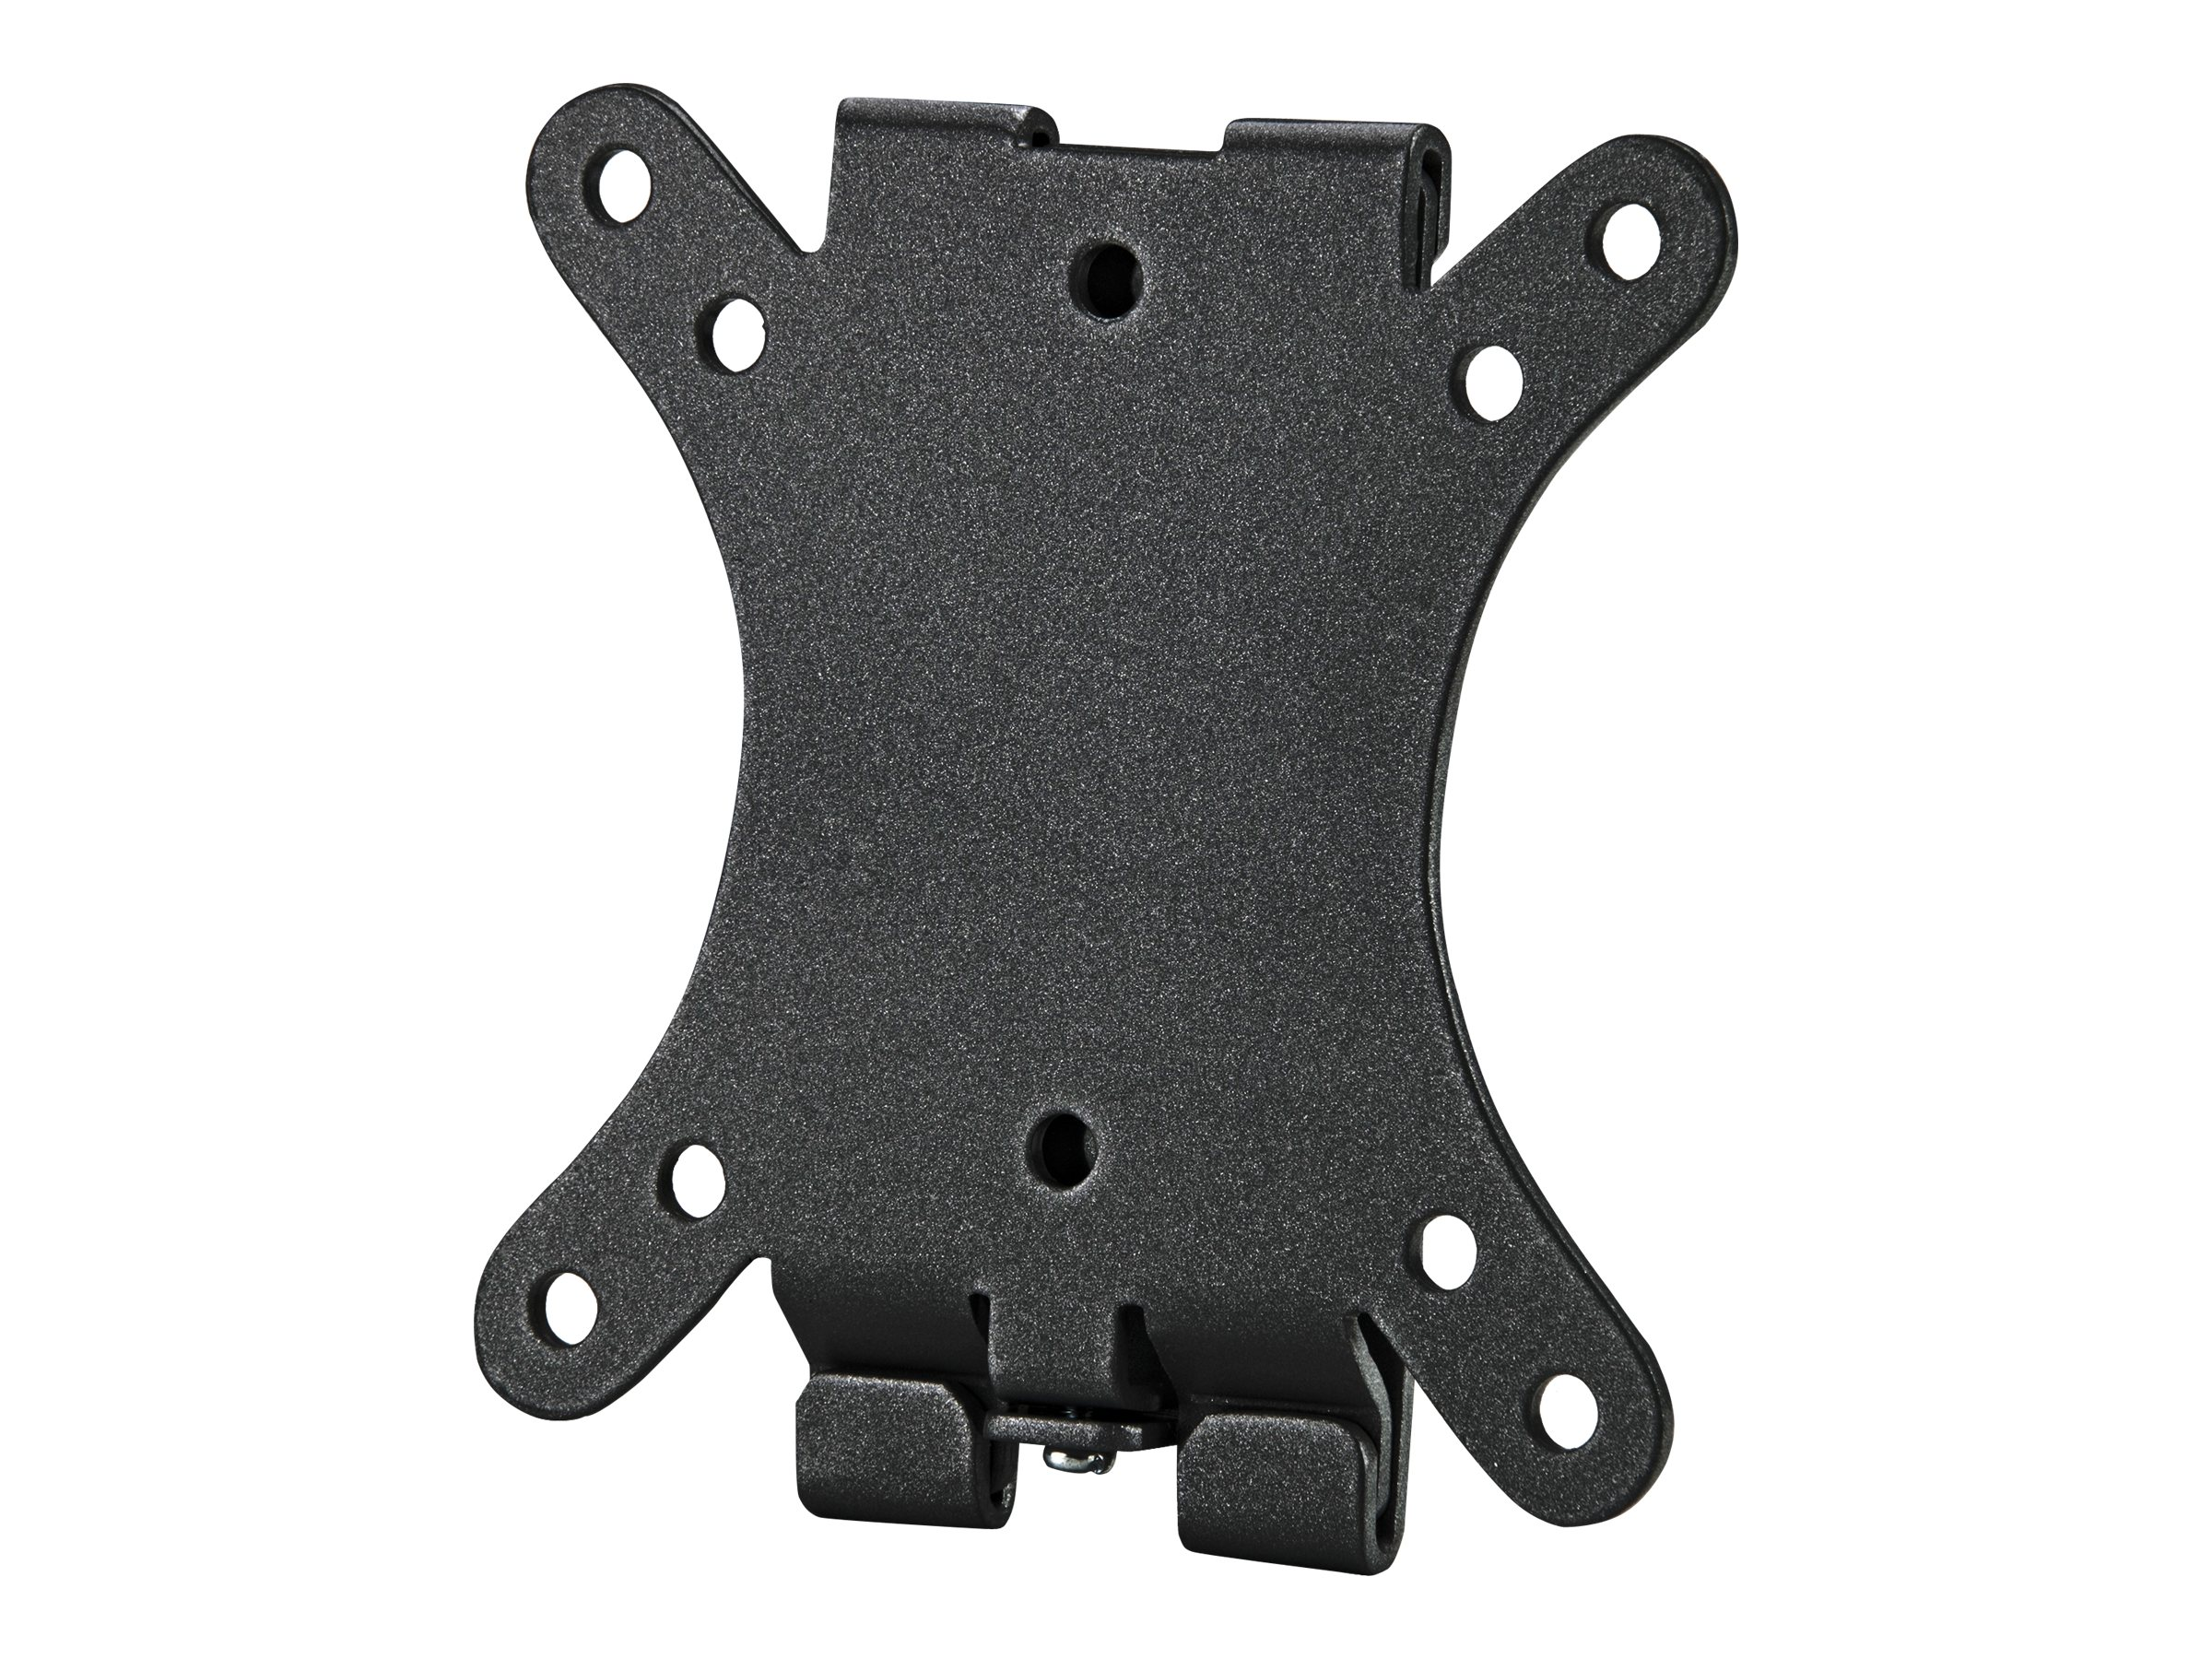 Ergotron Neo-Flex ULD Wall Mount for Flat Panels 13-32, Black